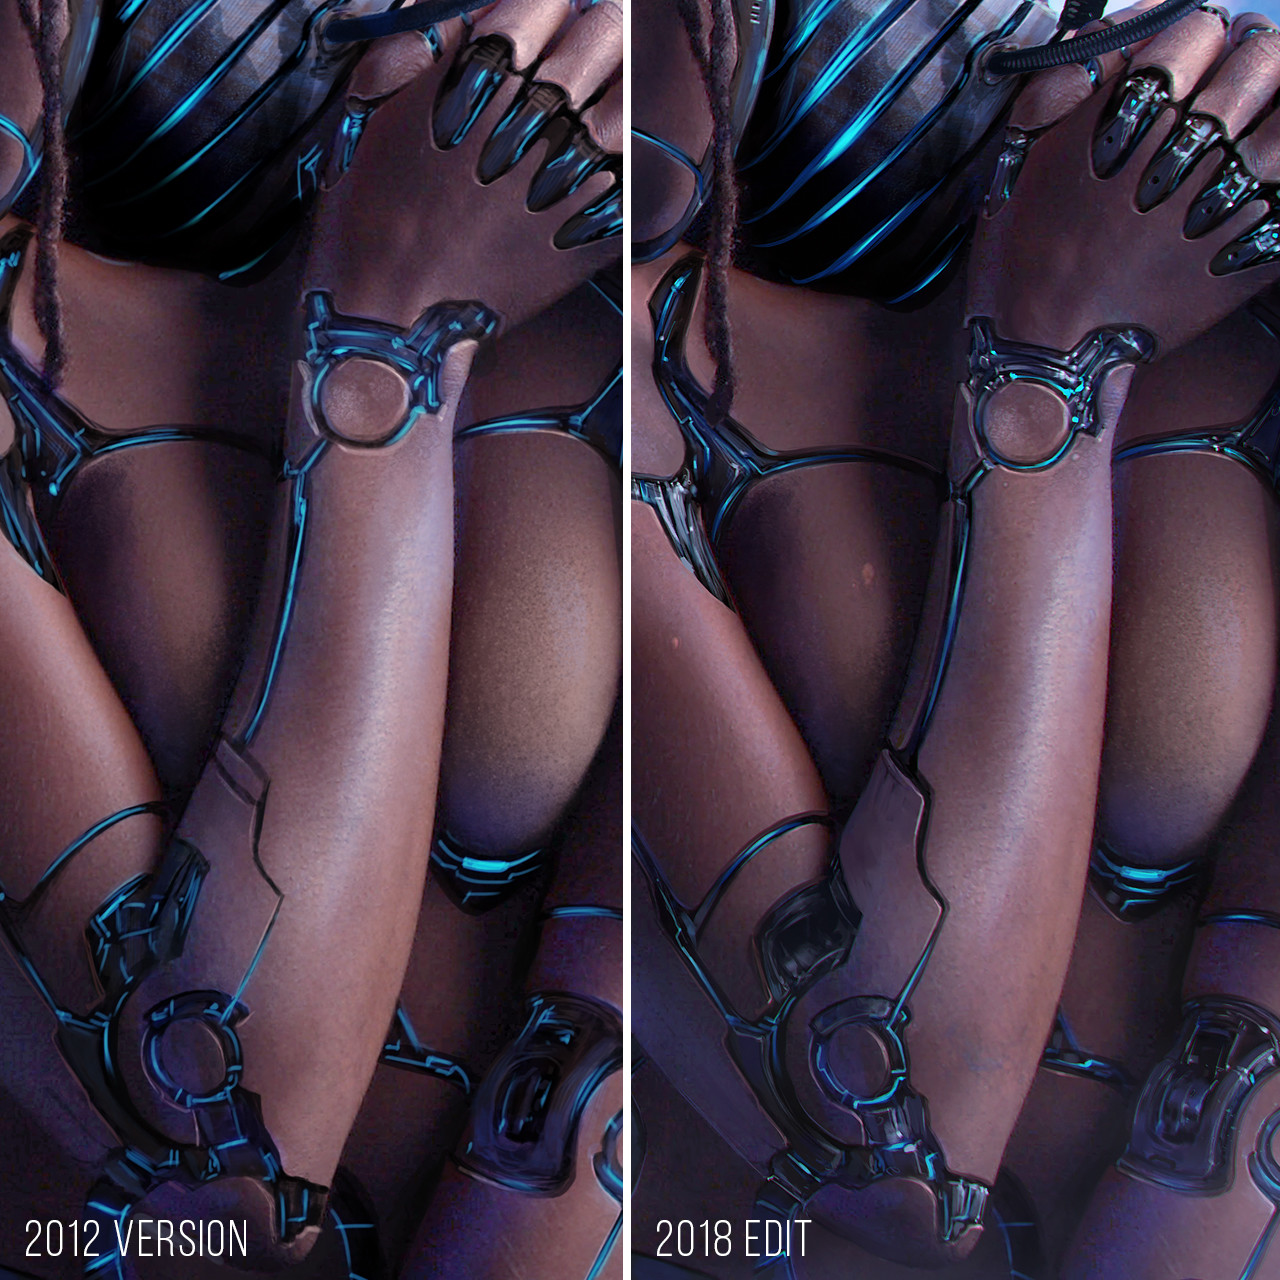 Version detail comparison